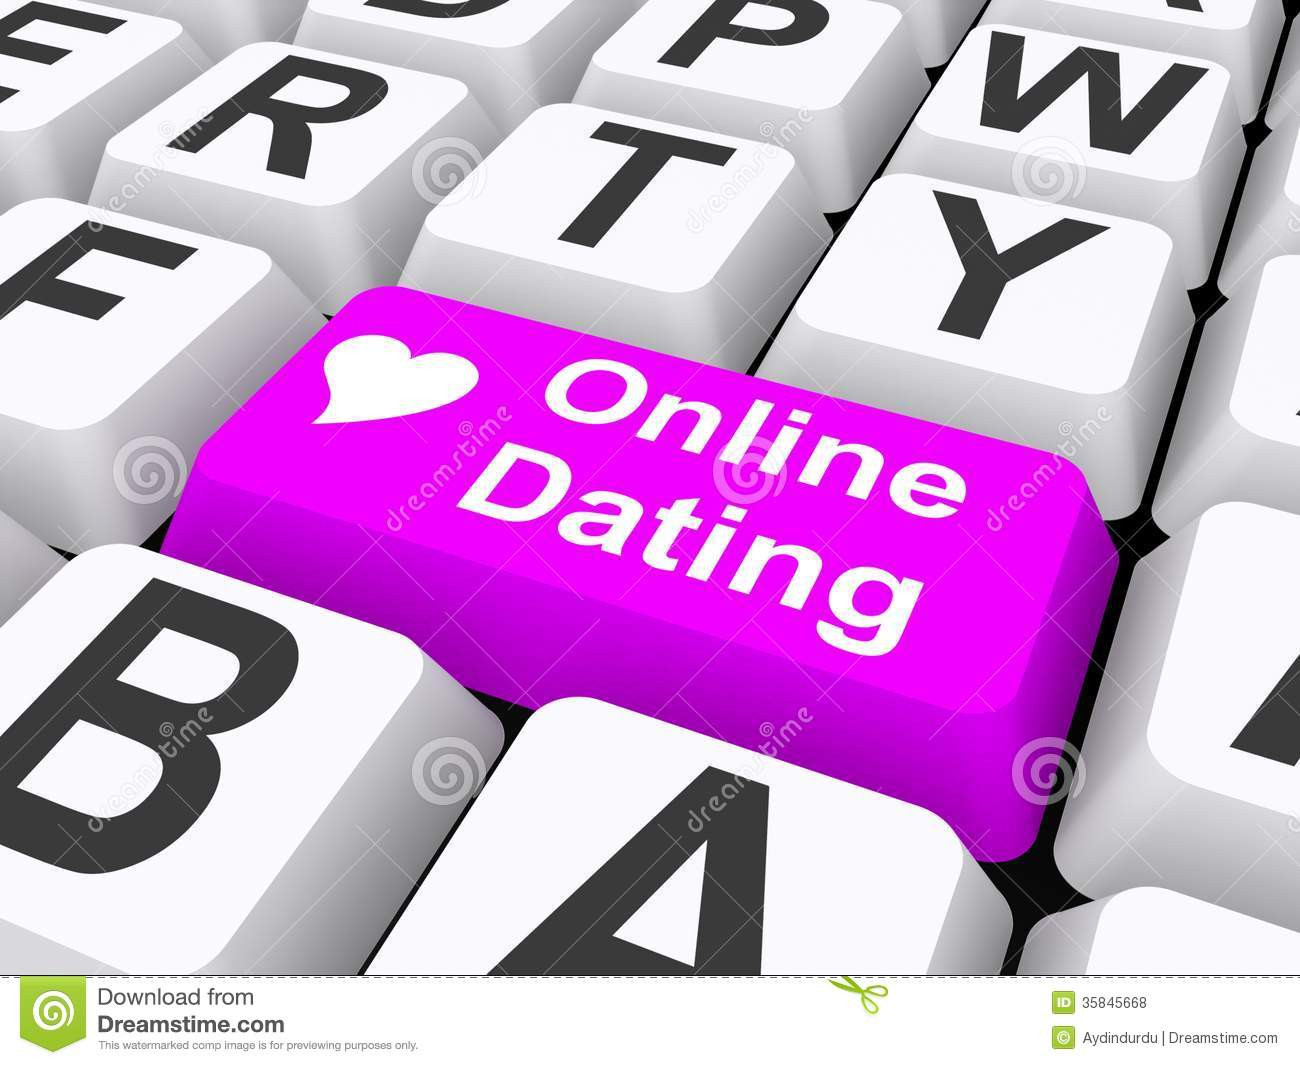 free online personals in akiachak Free online personals - join the leader in online dating services and find a date today meet singles in your area for dating, friendship, instant messages, chat and more.